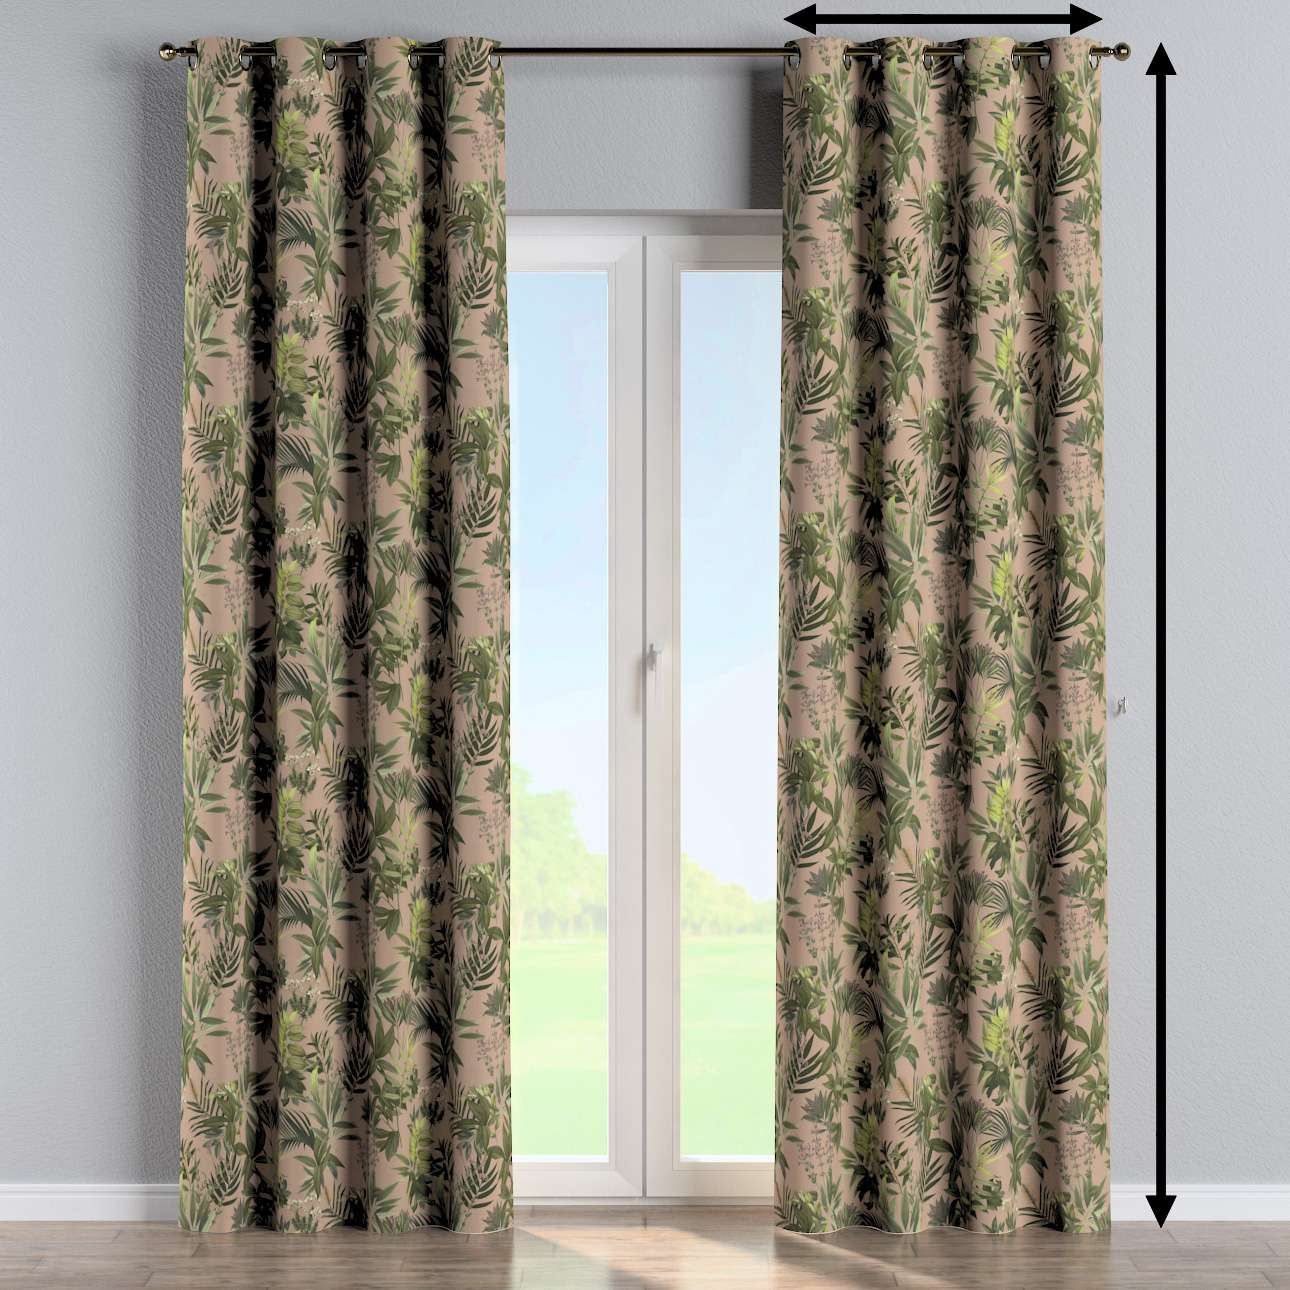 Eyelet curtain in collection Tropical Island, fabric: 143-71